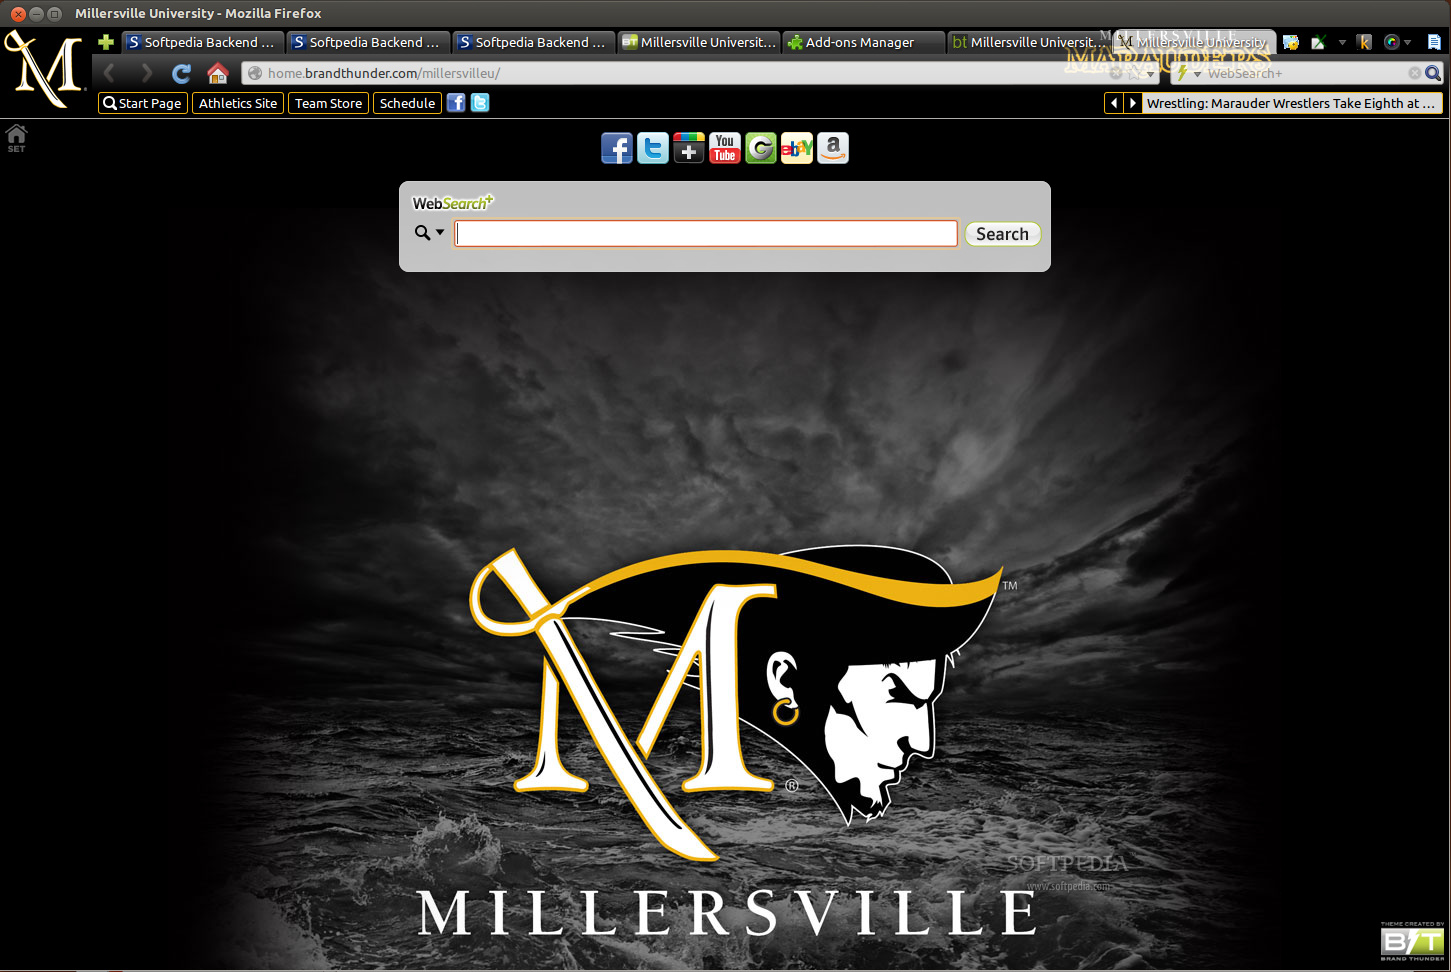 Millersville University for Firefox screenshot 1